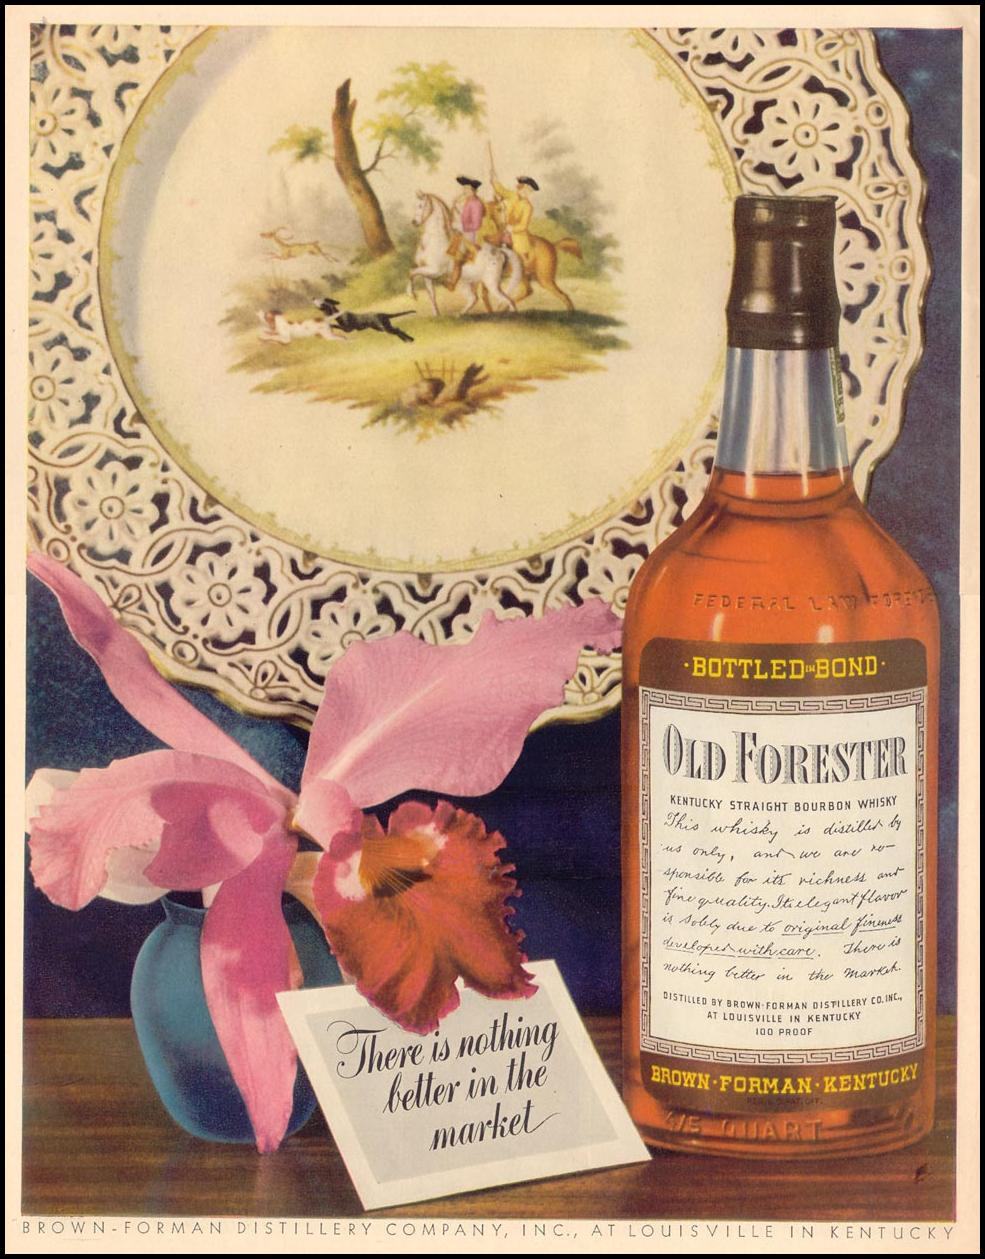 OLD FORESTER BOURBON WHISKY LIFE 11/08/1943